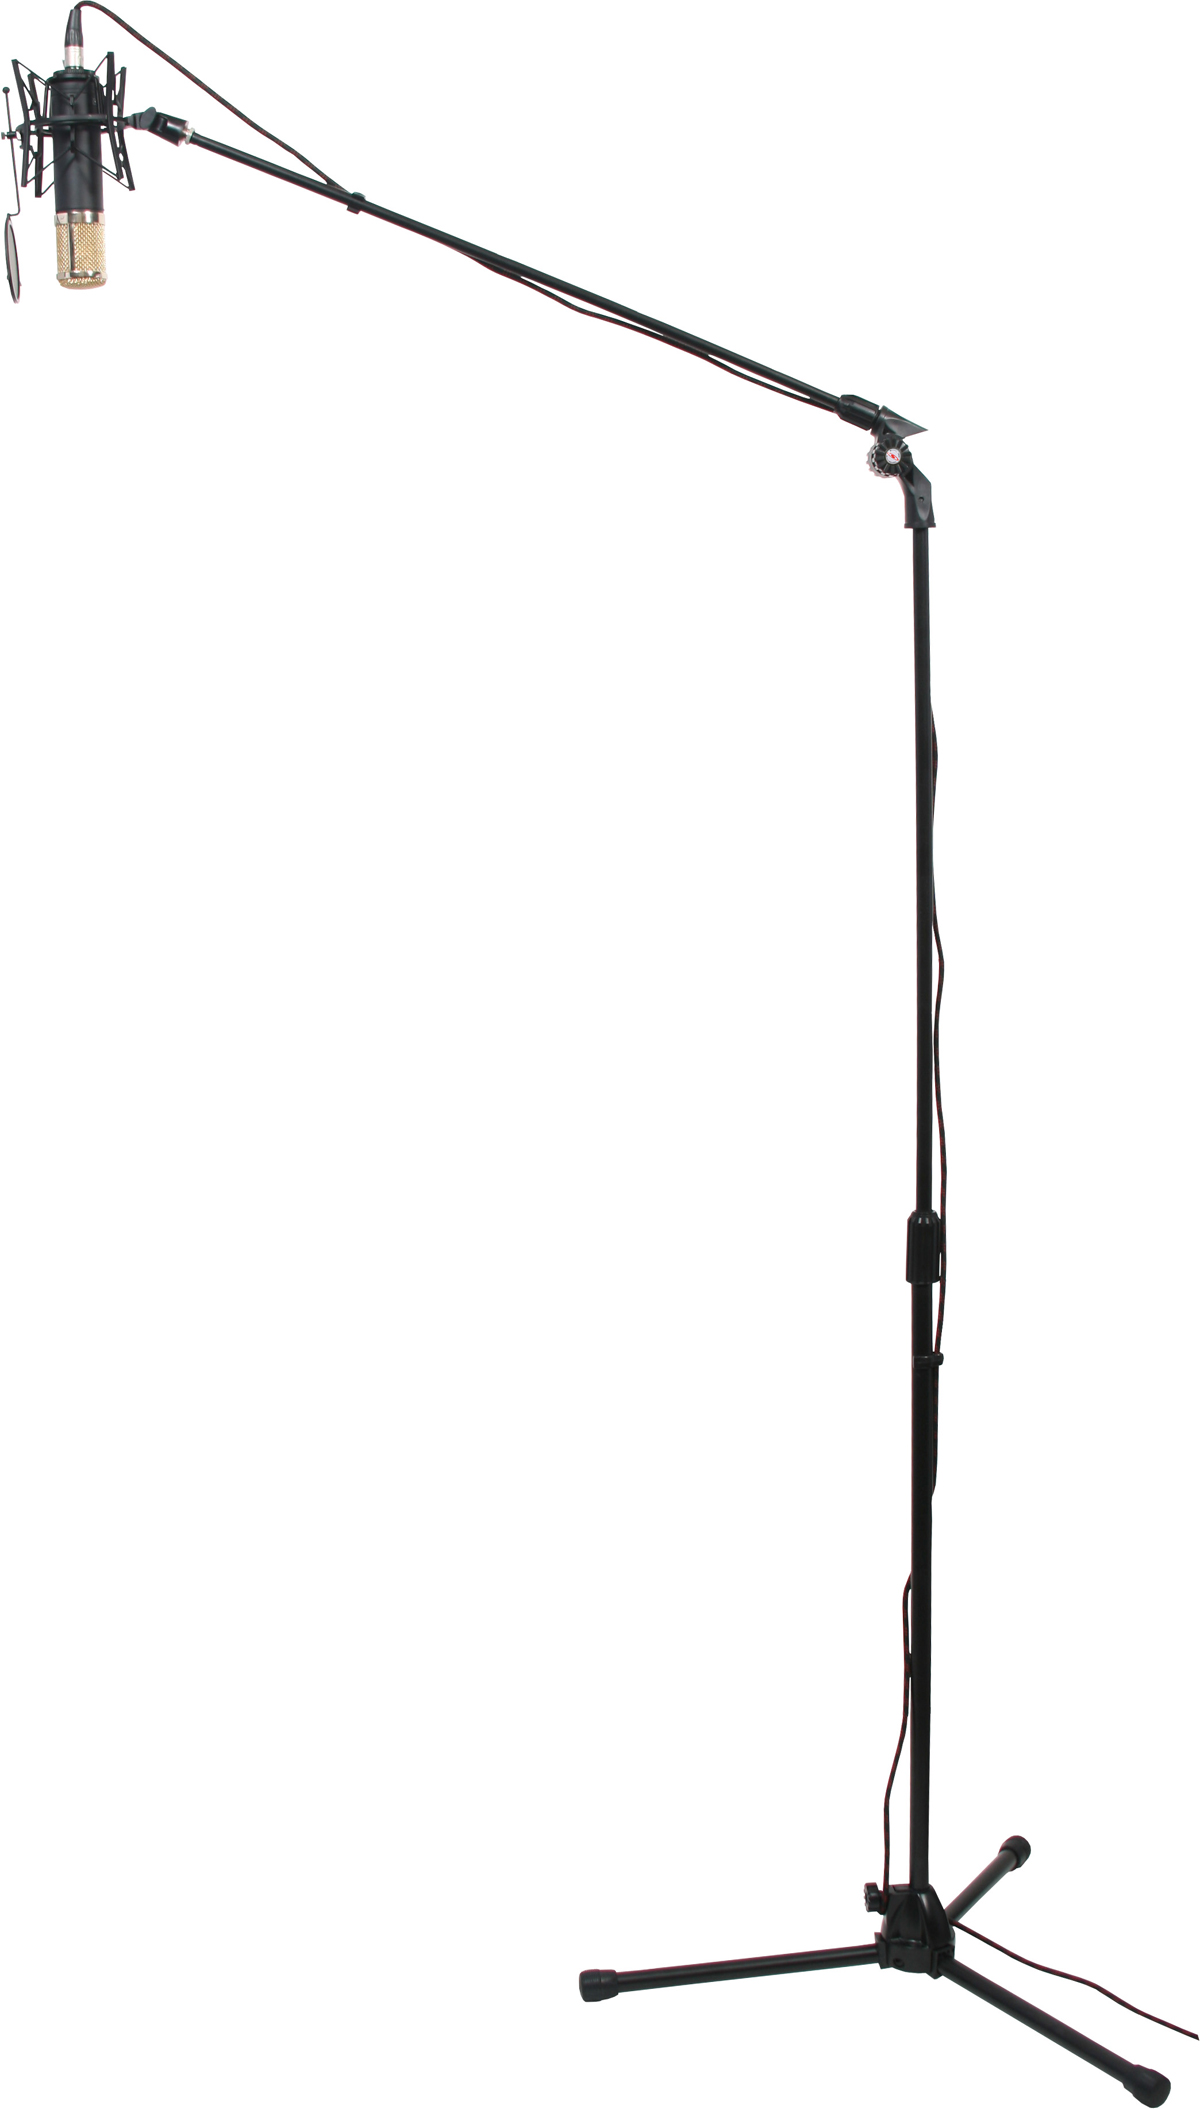 Galaxy Audio Mst C90 Standformer Mst C Combination Mic